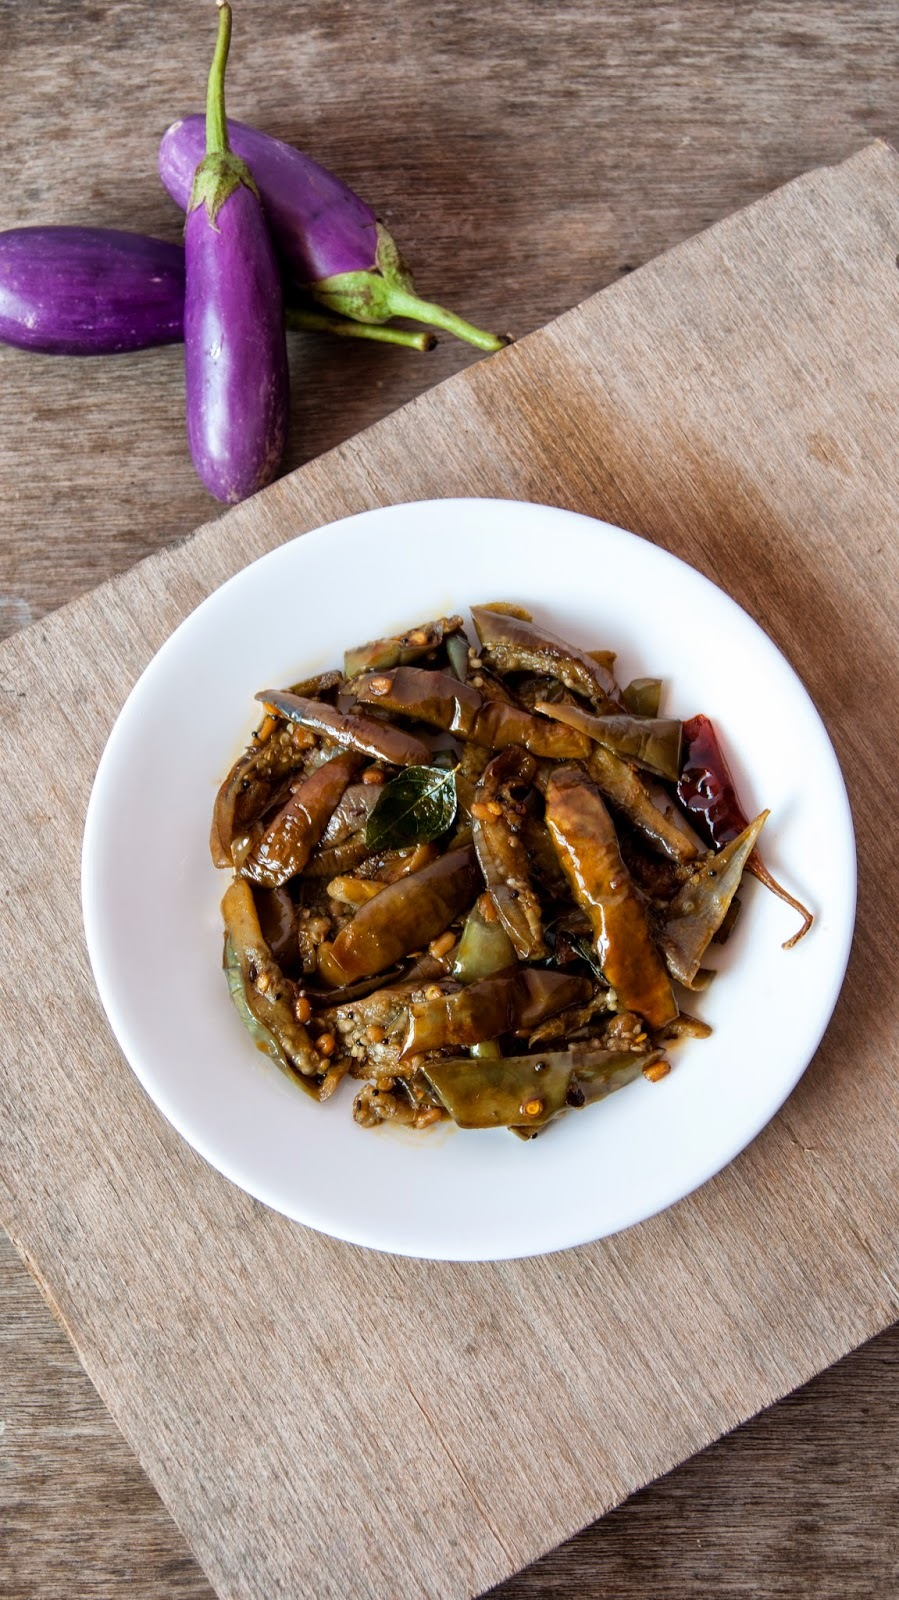 Stir Fried Eggplant / Brinjal